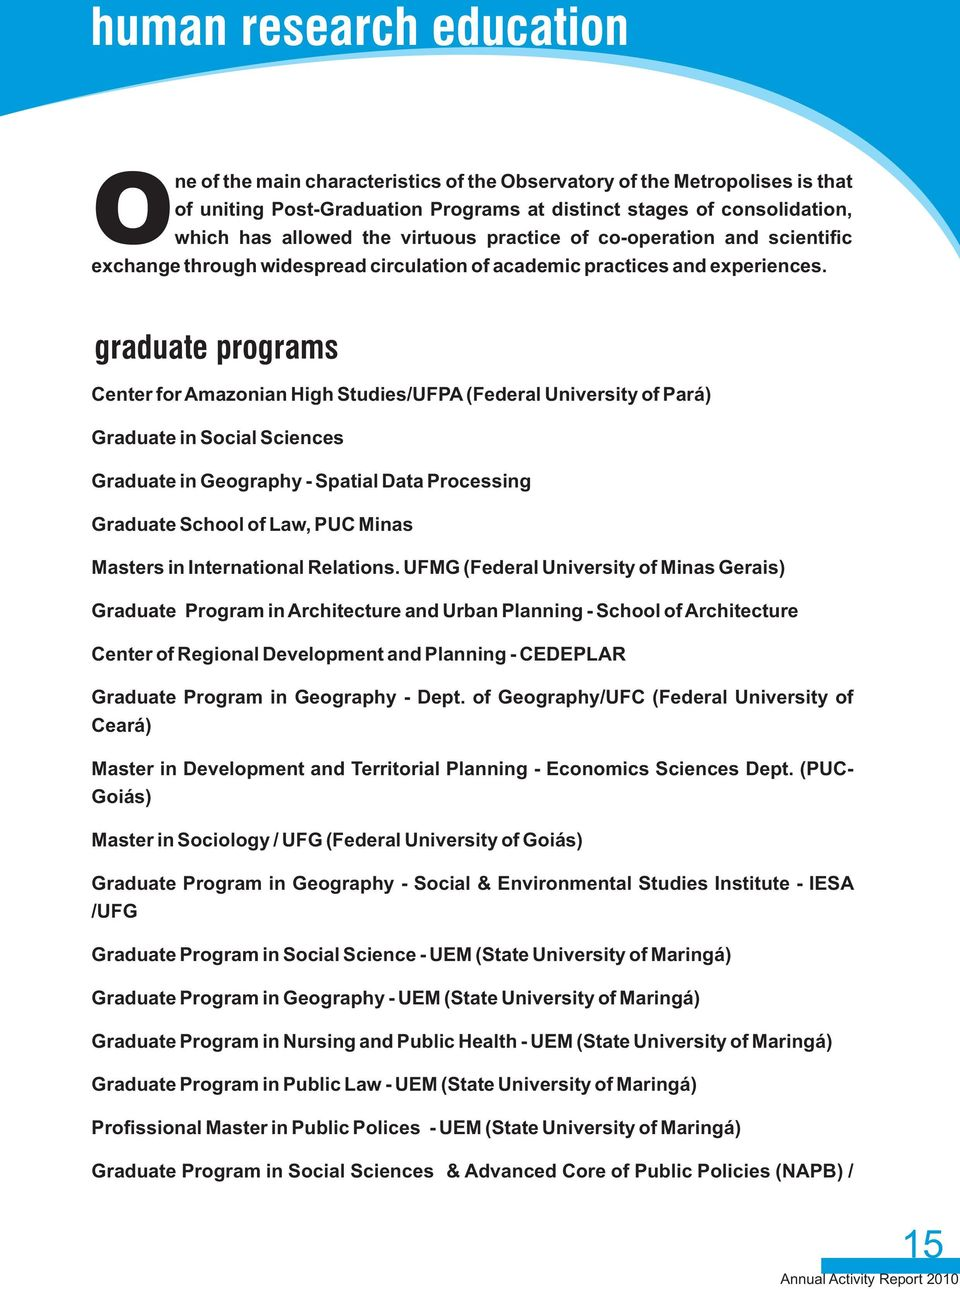 graduate programs Center for Amazonian High Studies/UFPA (Federal University of Pará) Graduate in Social Sciences Graduate in Geography - Spatial Data Processing Graduate School of Law, PUC Minas